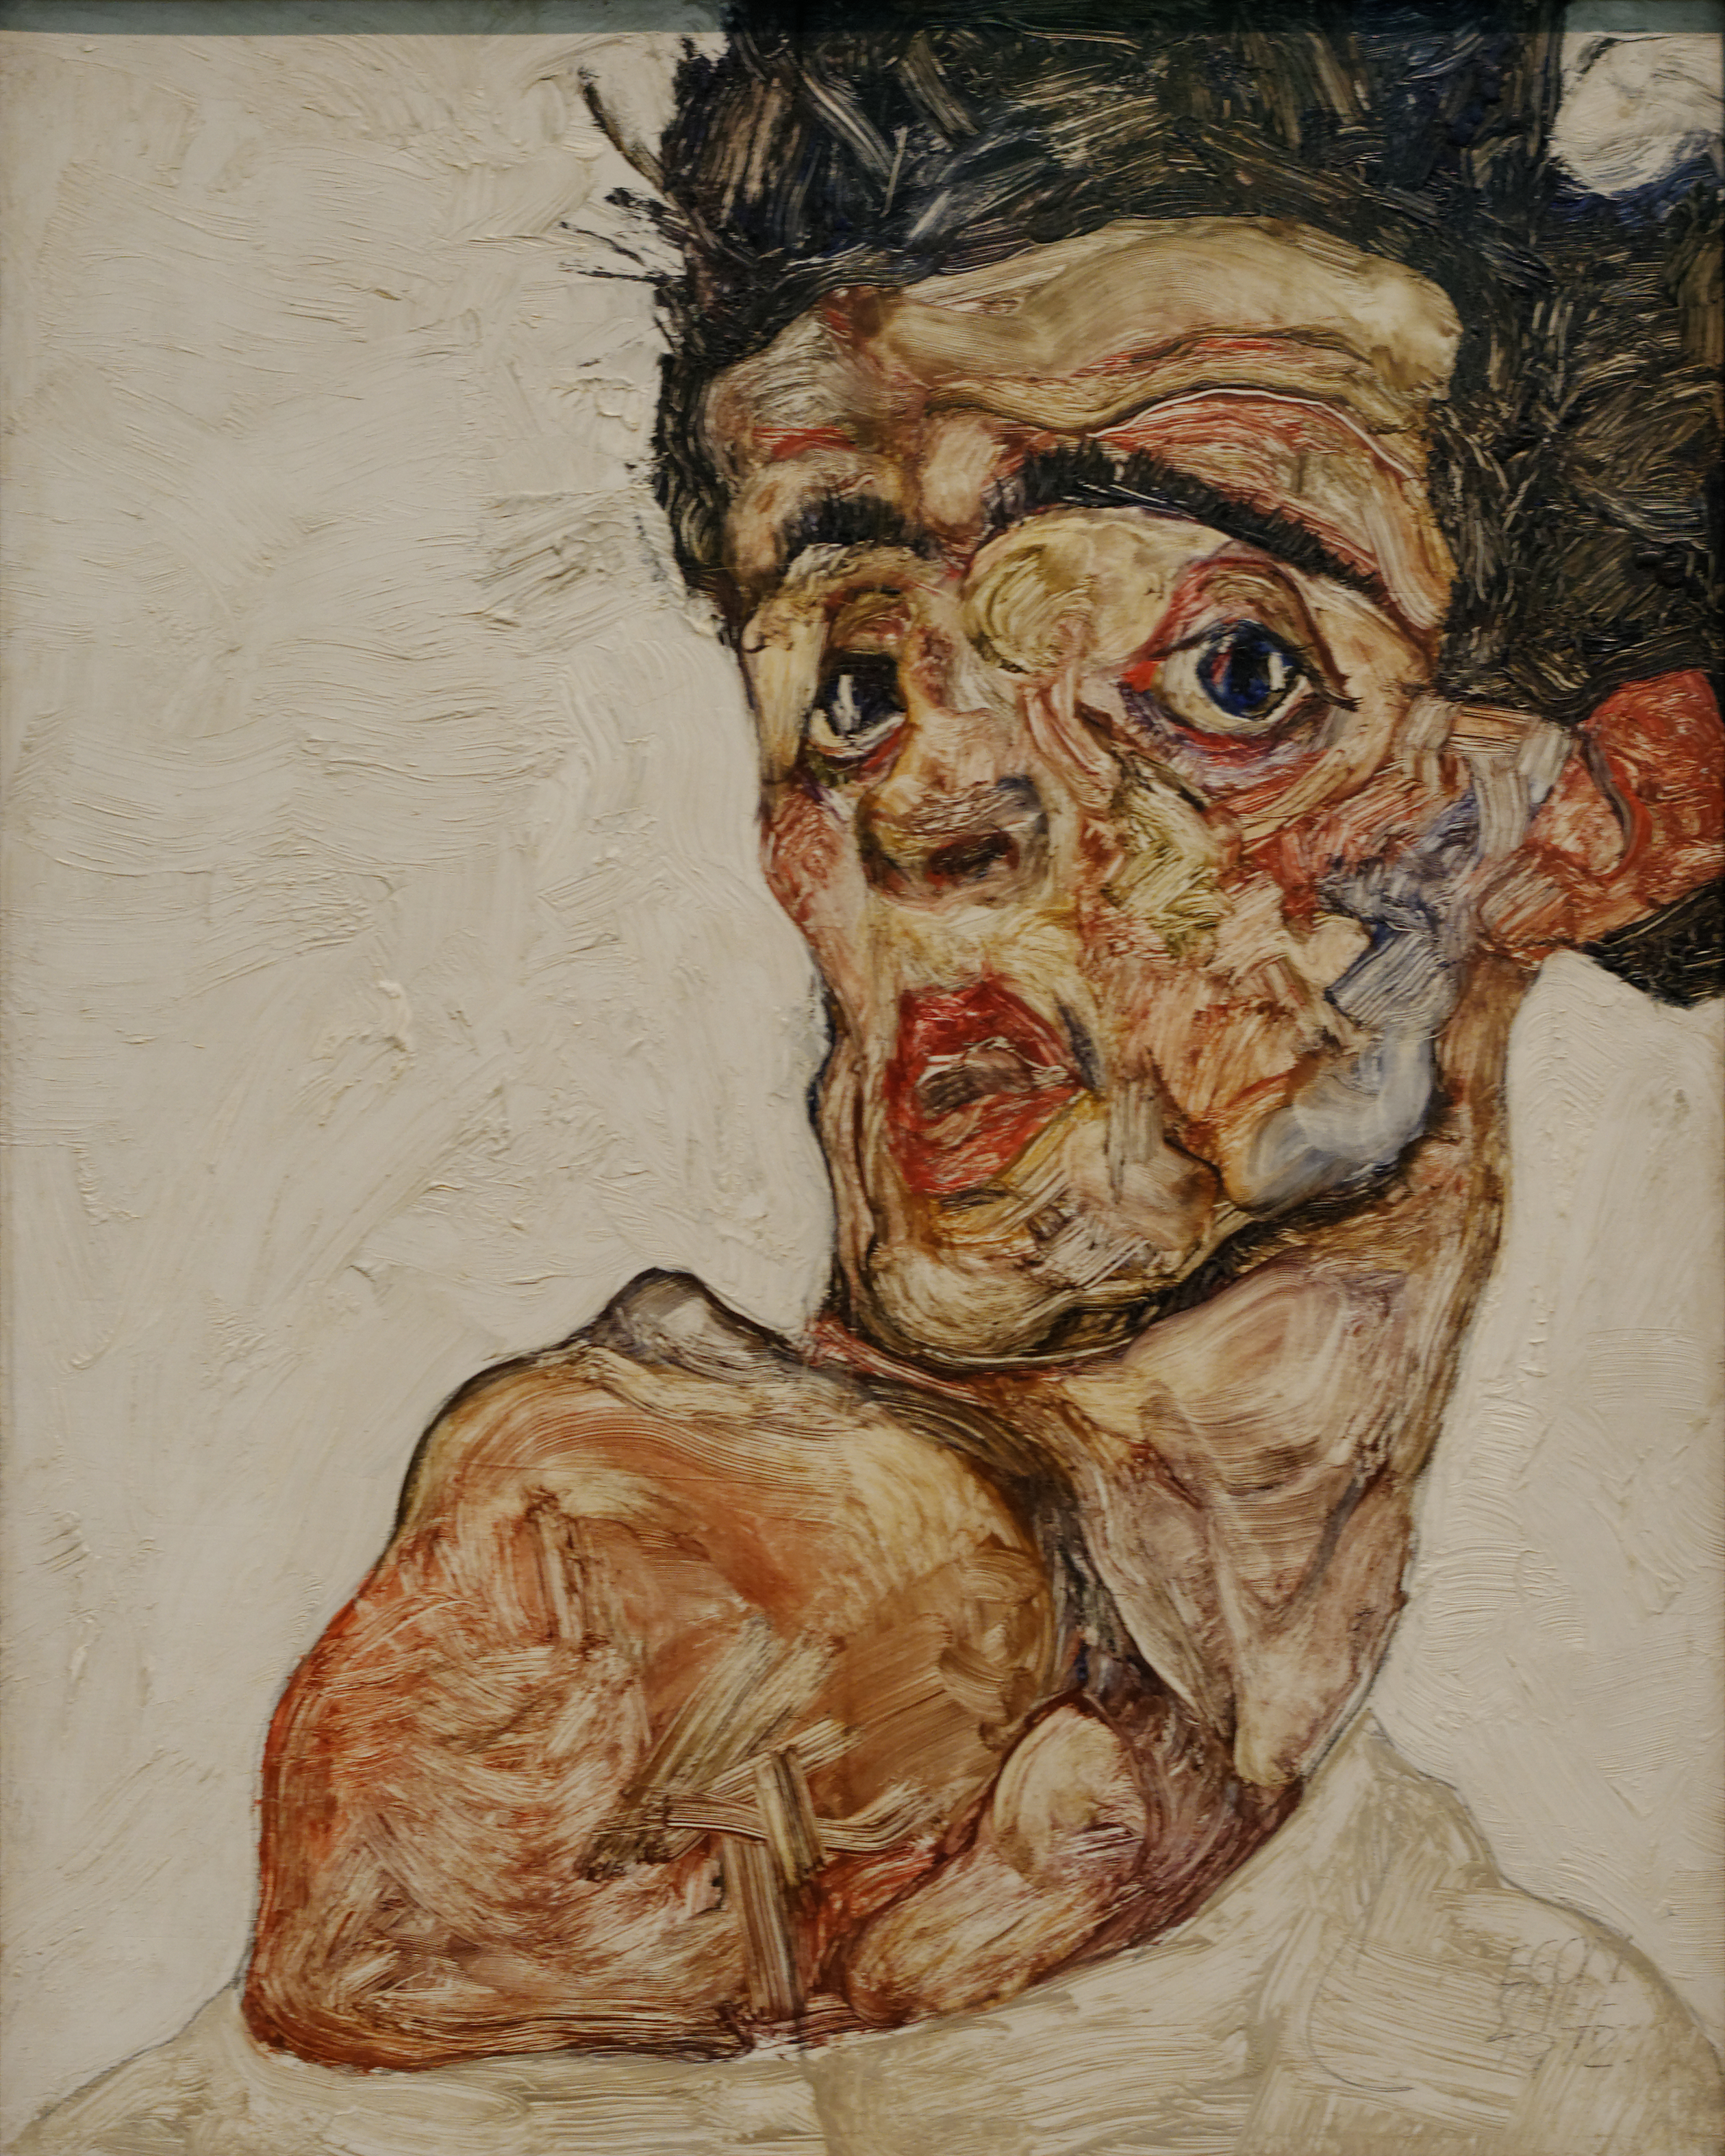 Egon schiele self portraits